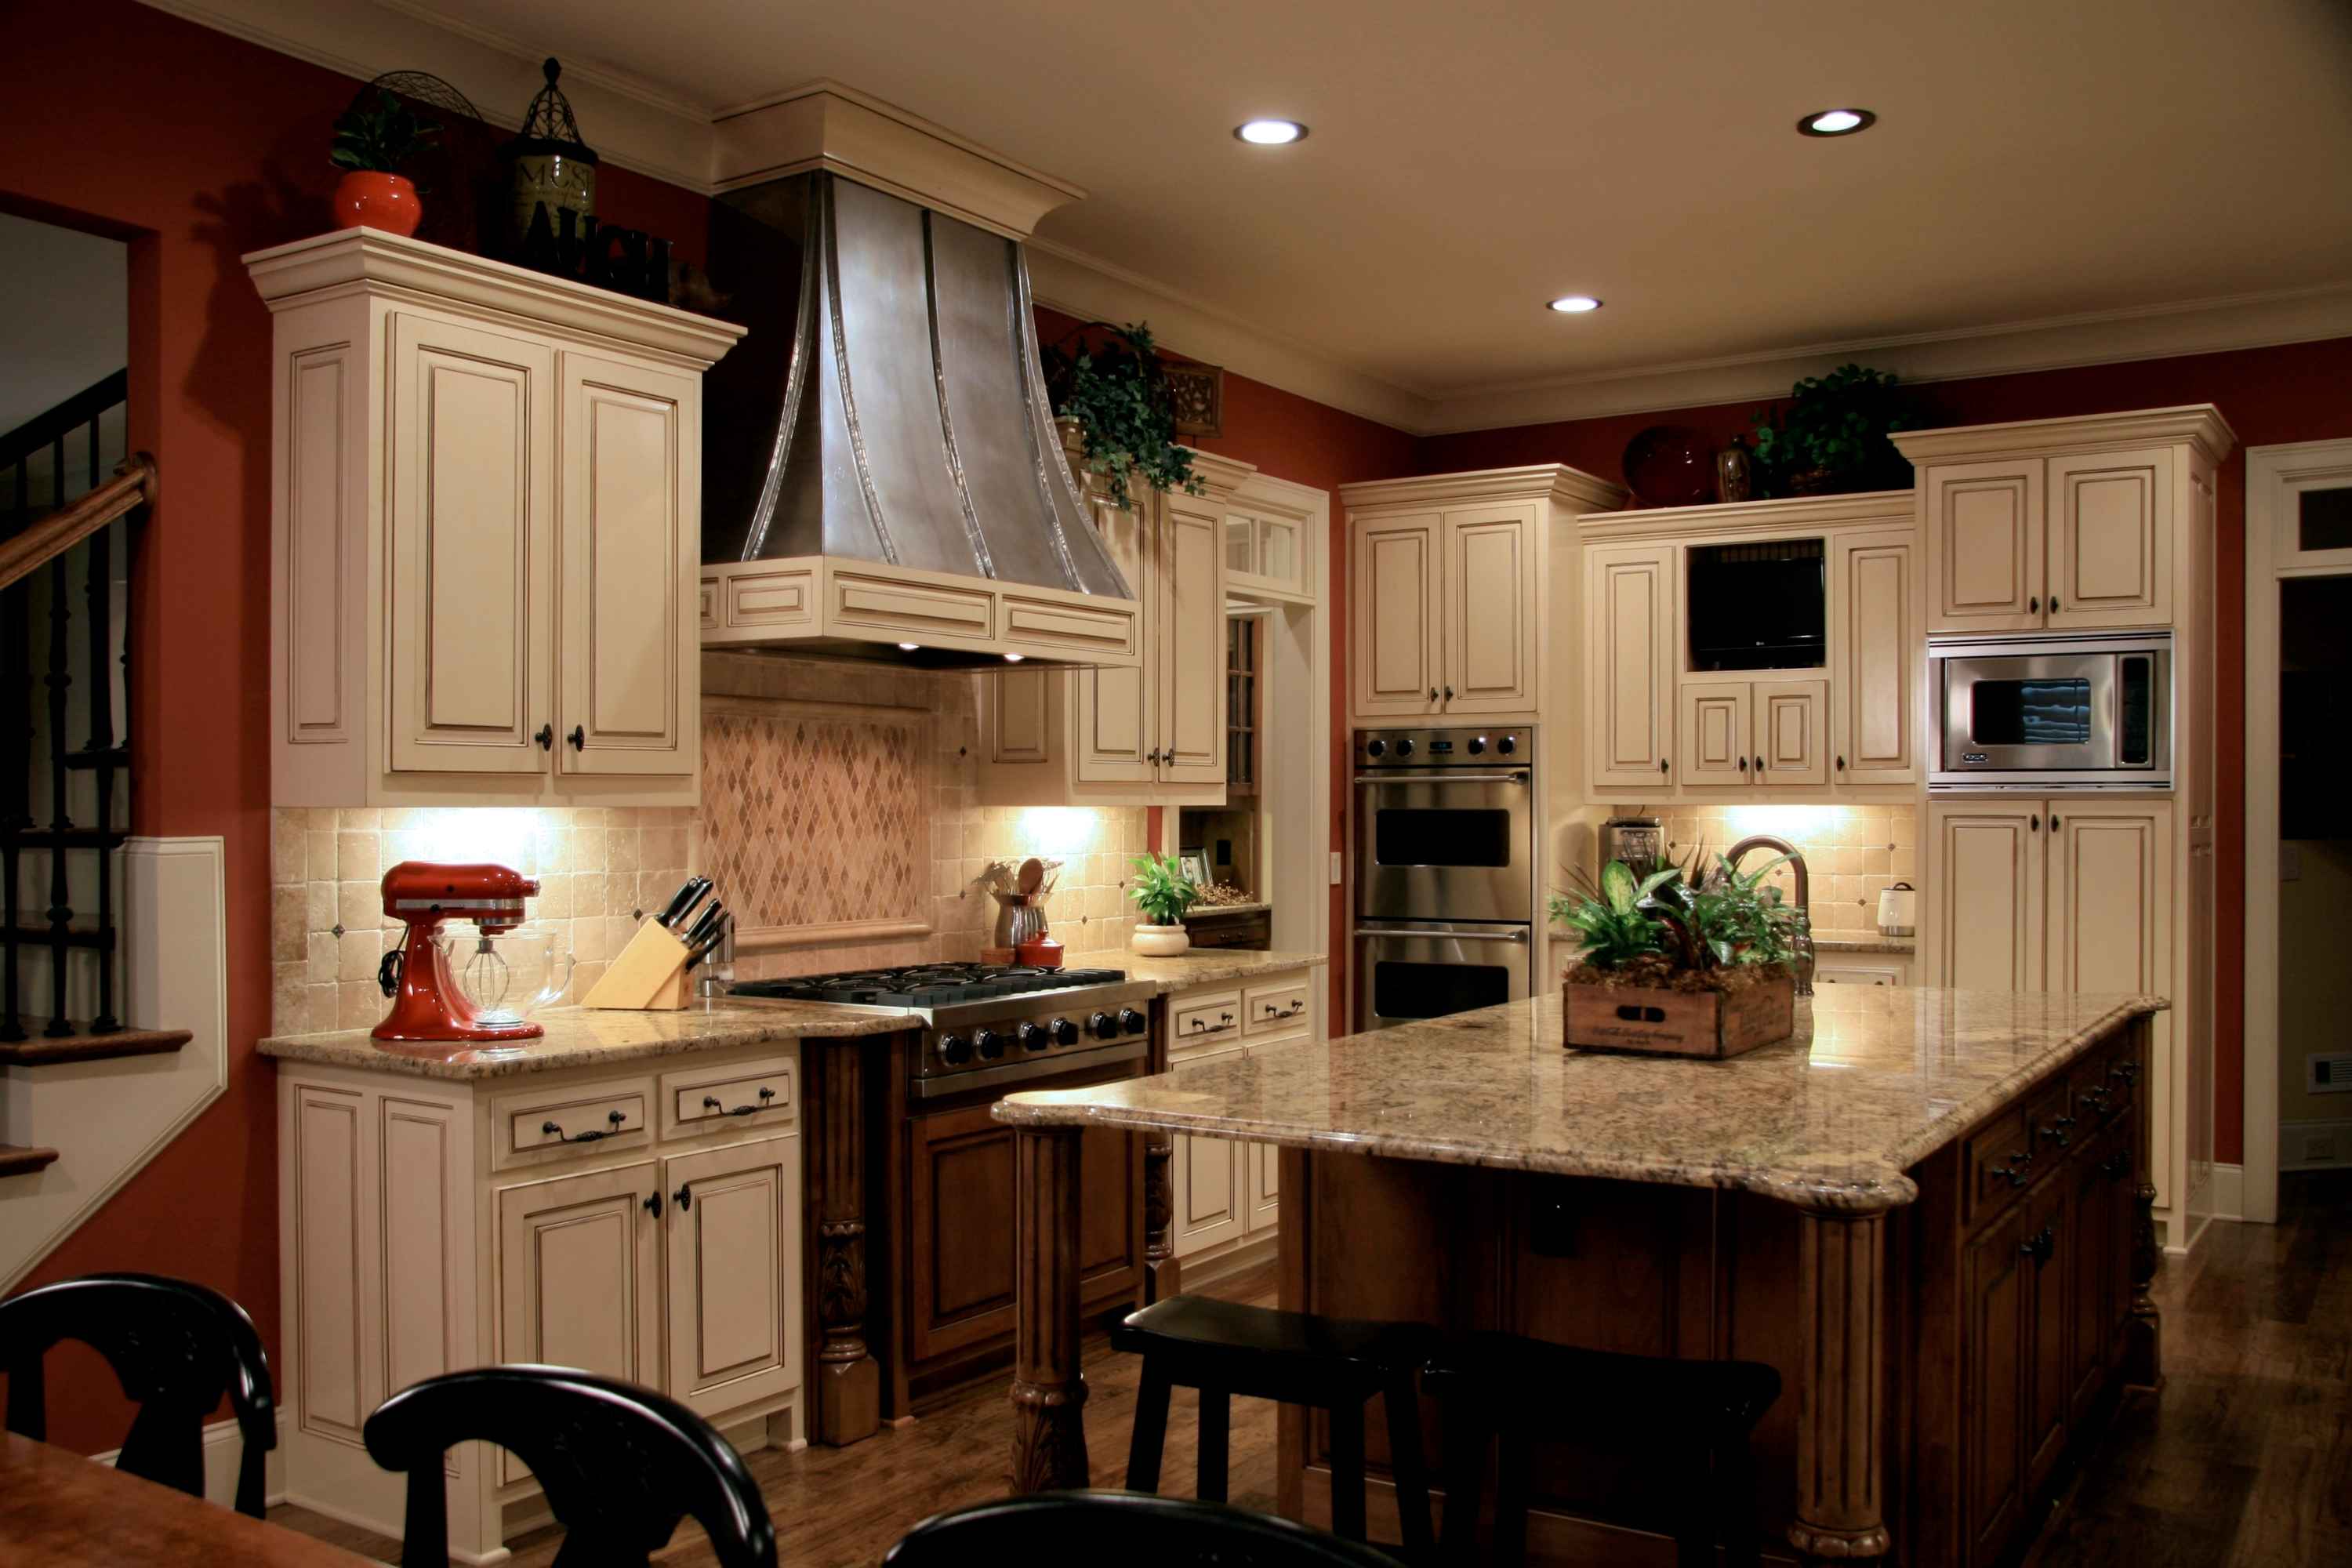 how to install recessed lighting in a kitchen recessed kitchen lighting Recessed lighting in a kitchen